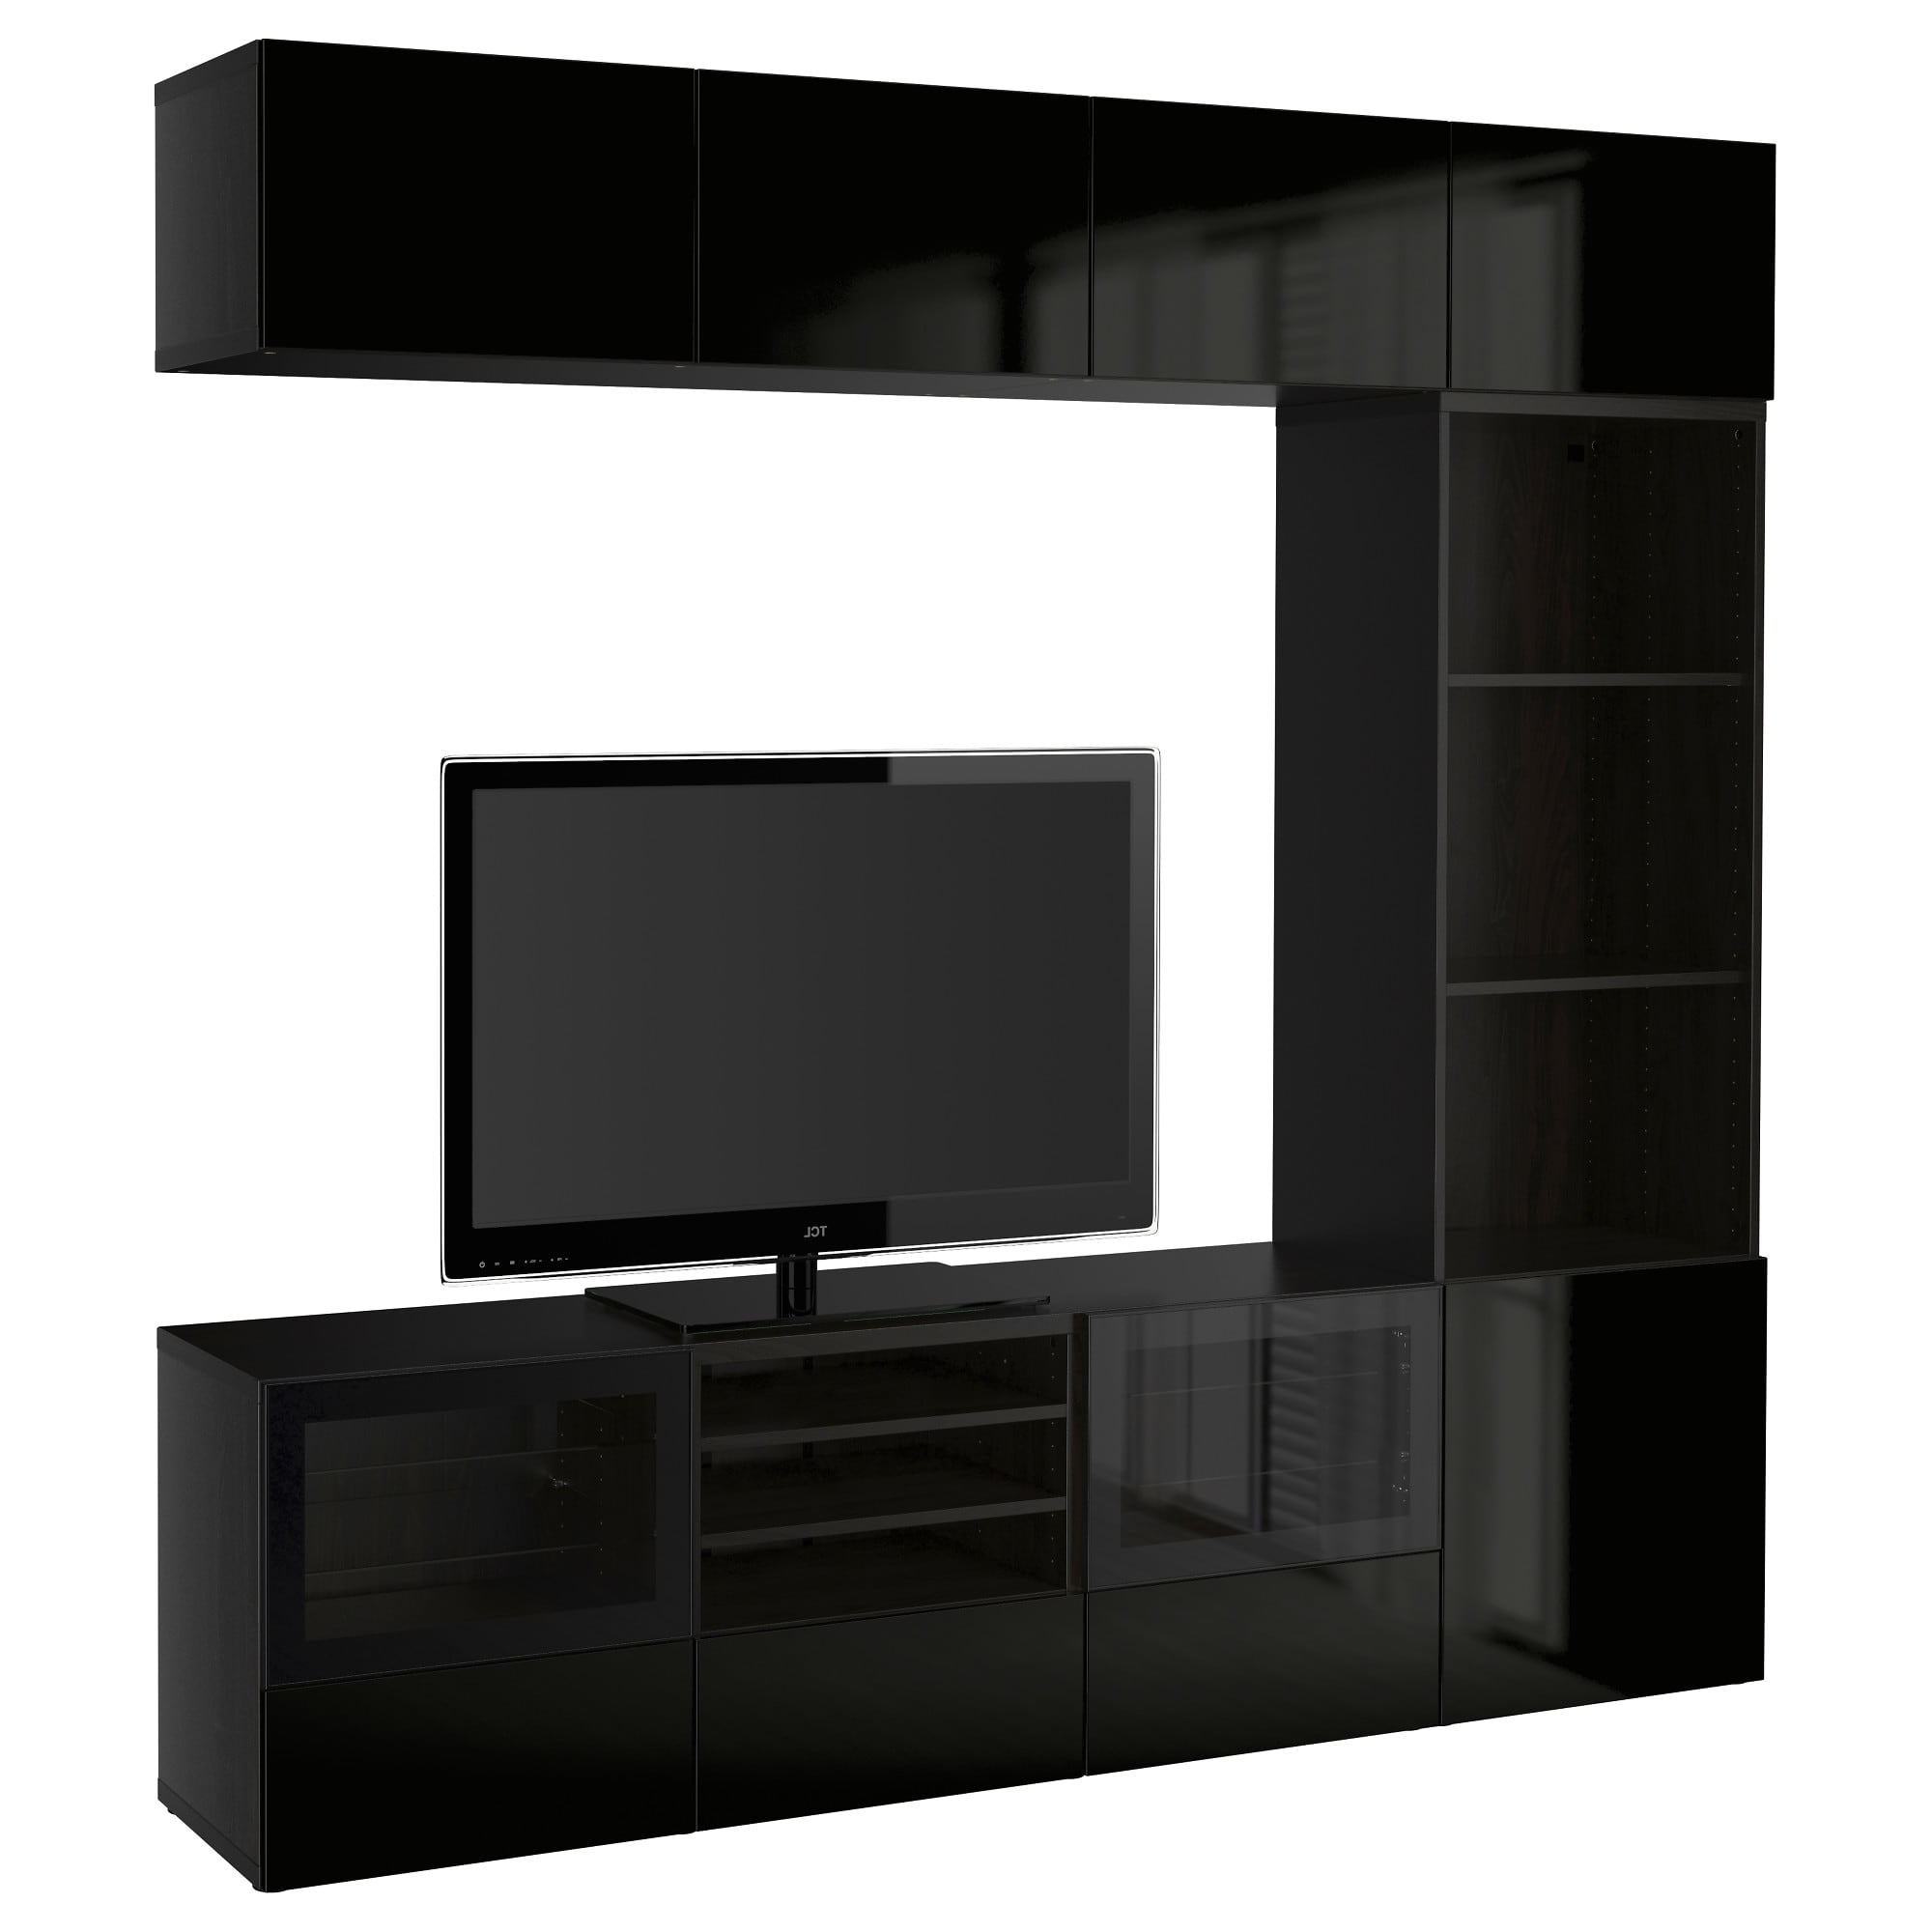 Ikea With Regard To Best And Newest Dresser And Tv Stands Combination (View 18 of 20)